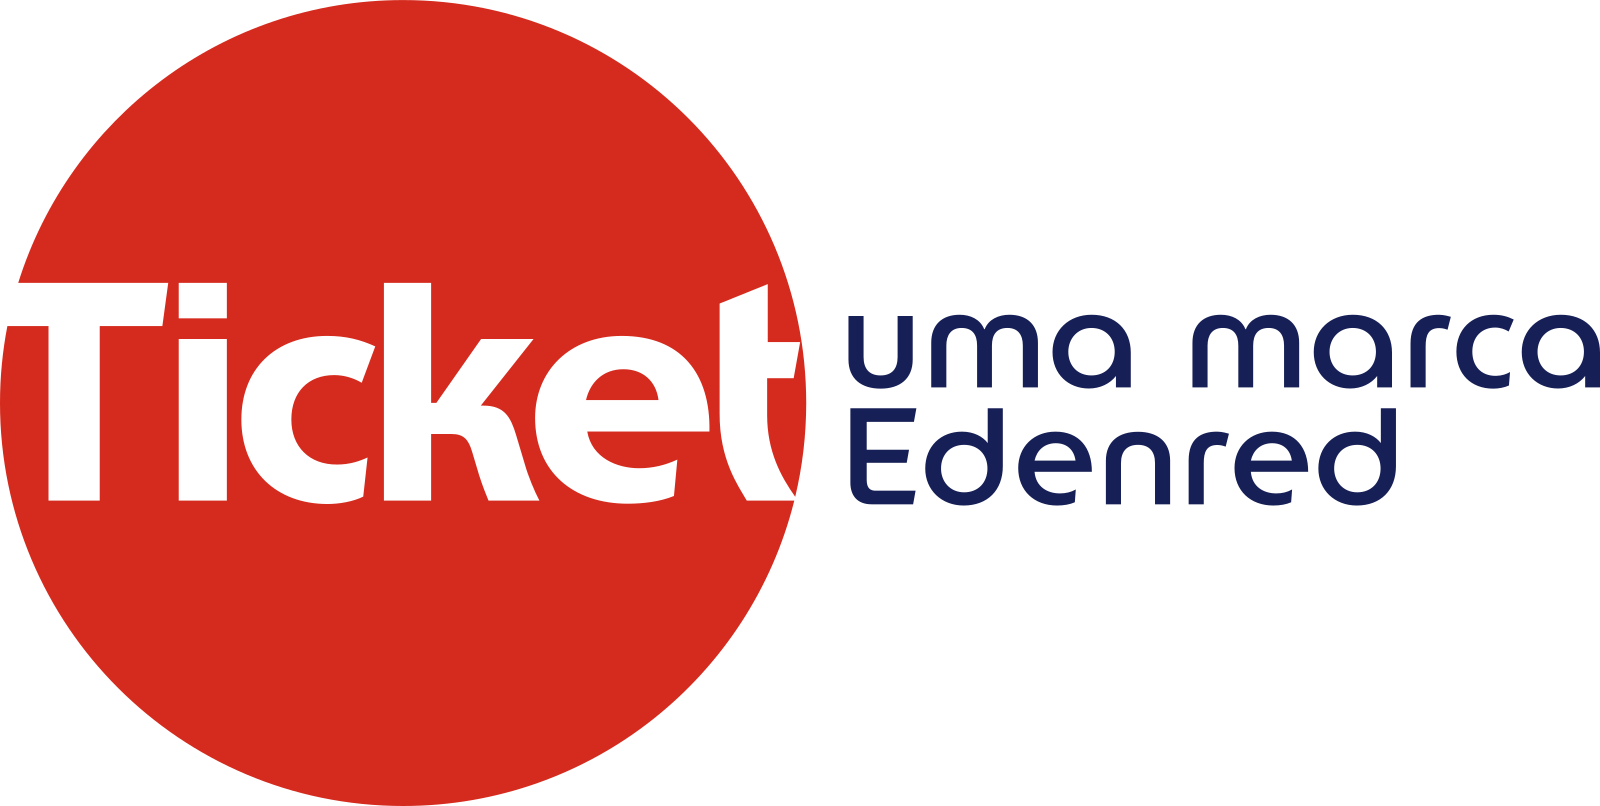 ticket-logo-5